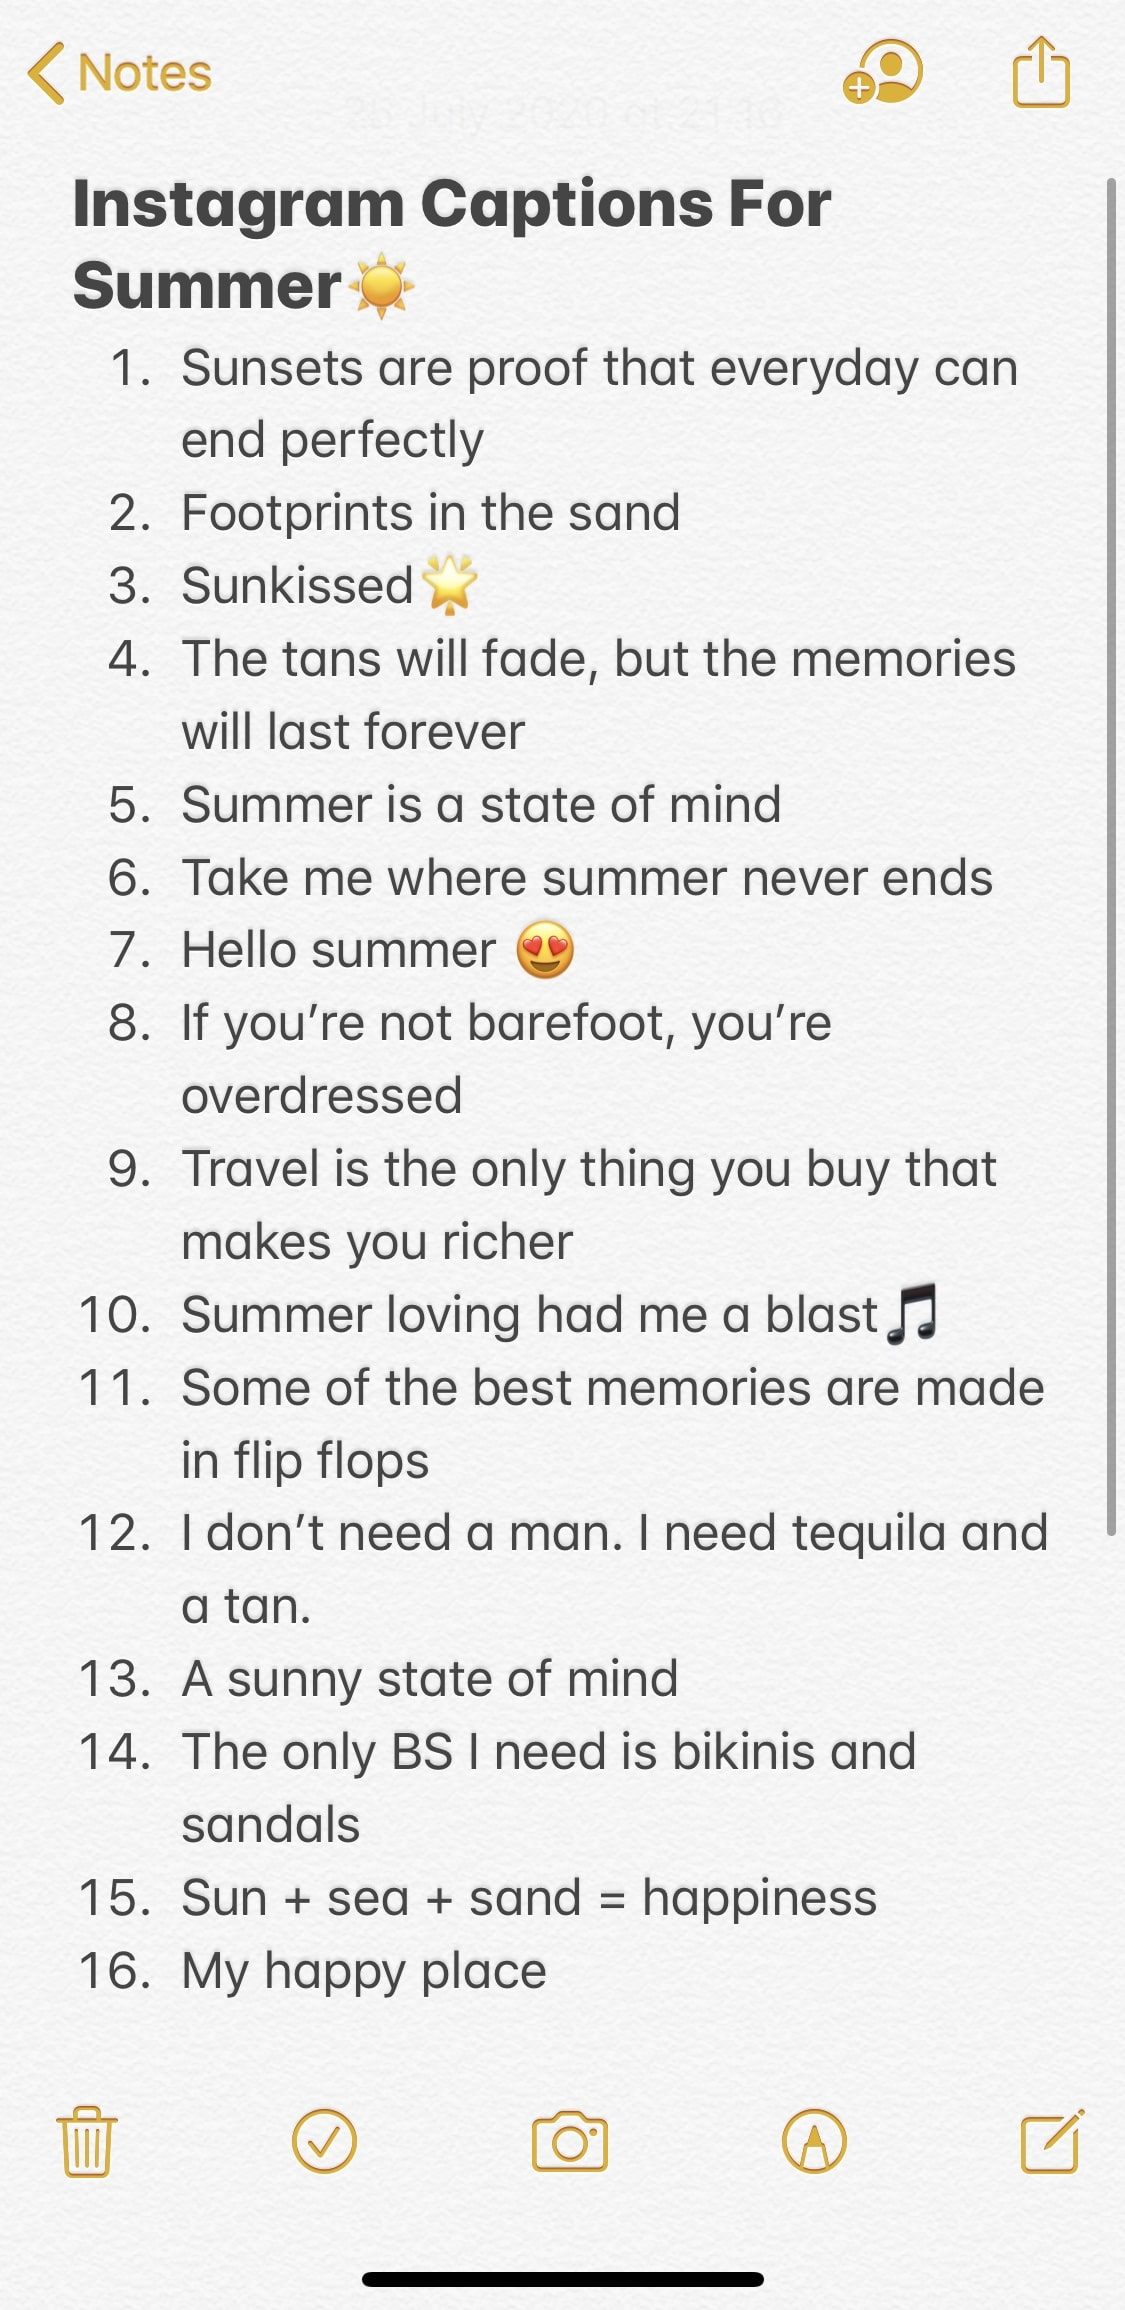 instagram caption ideas for summer